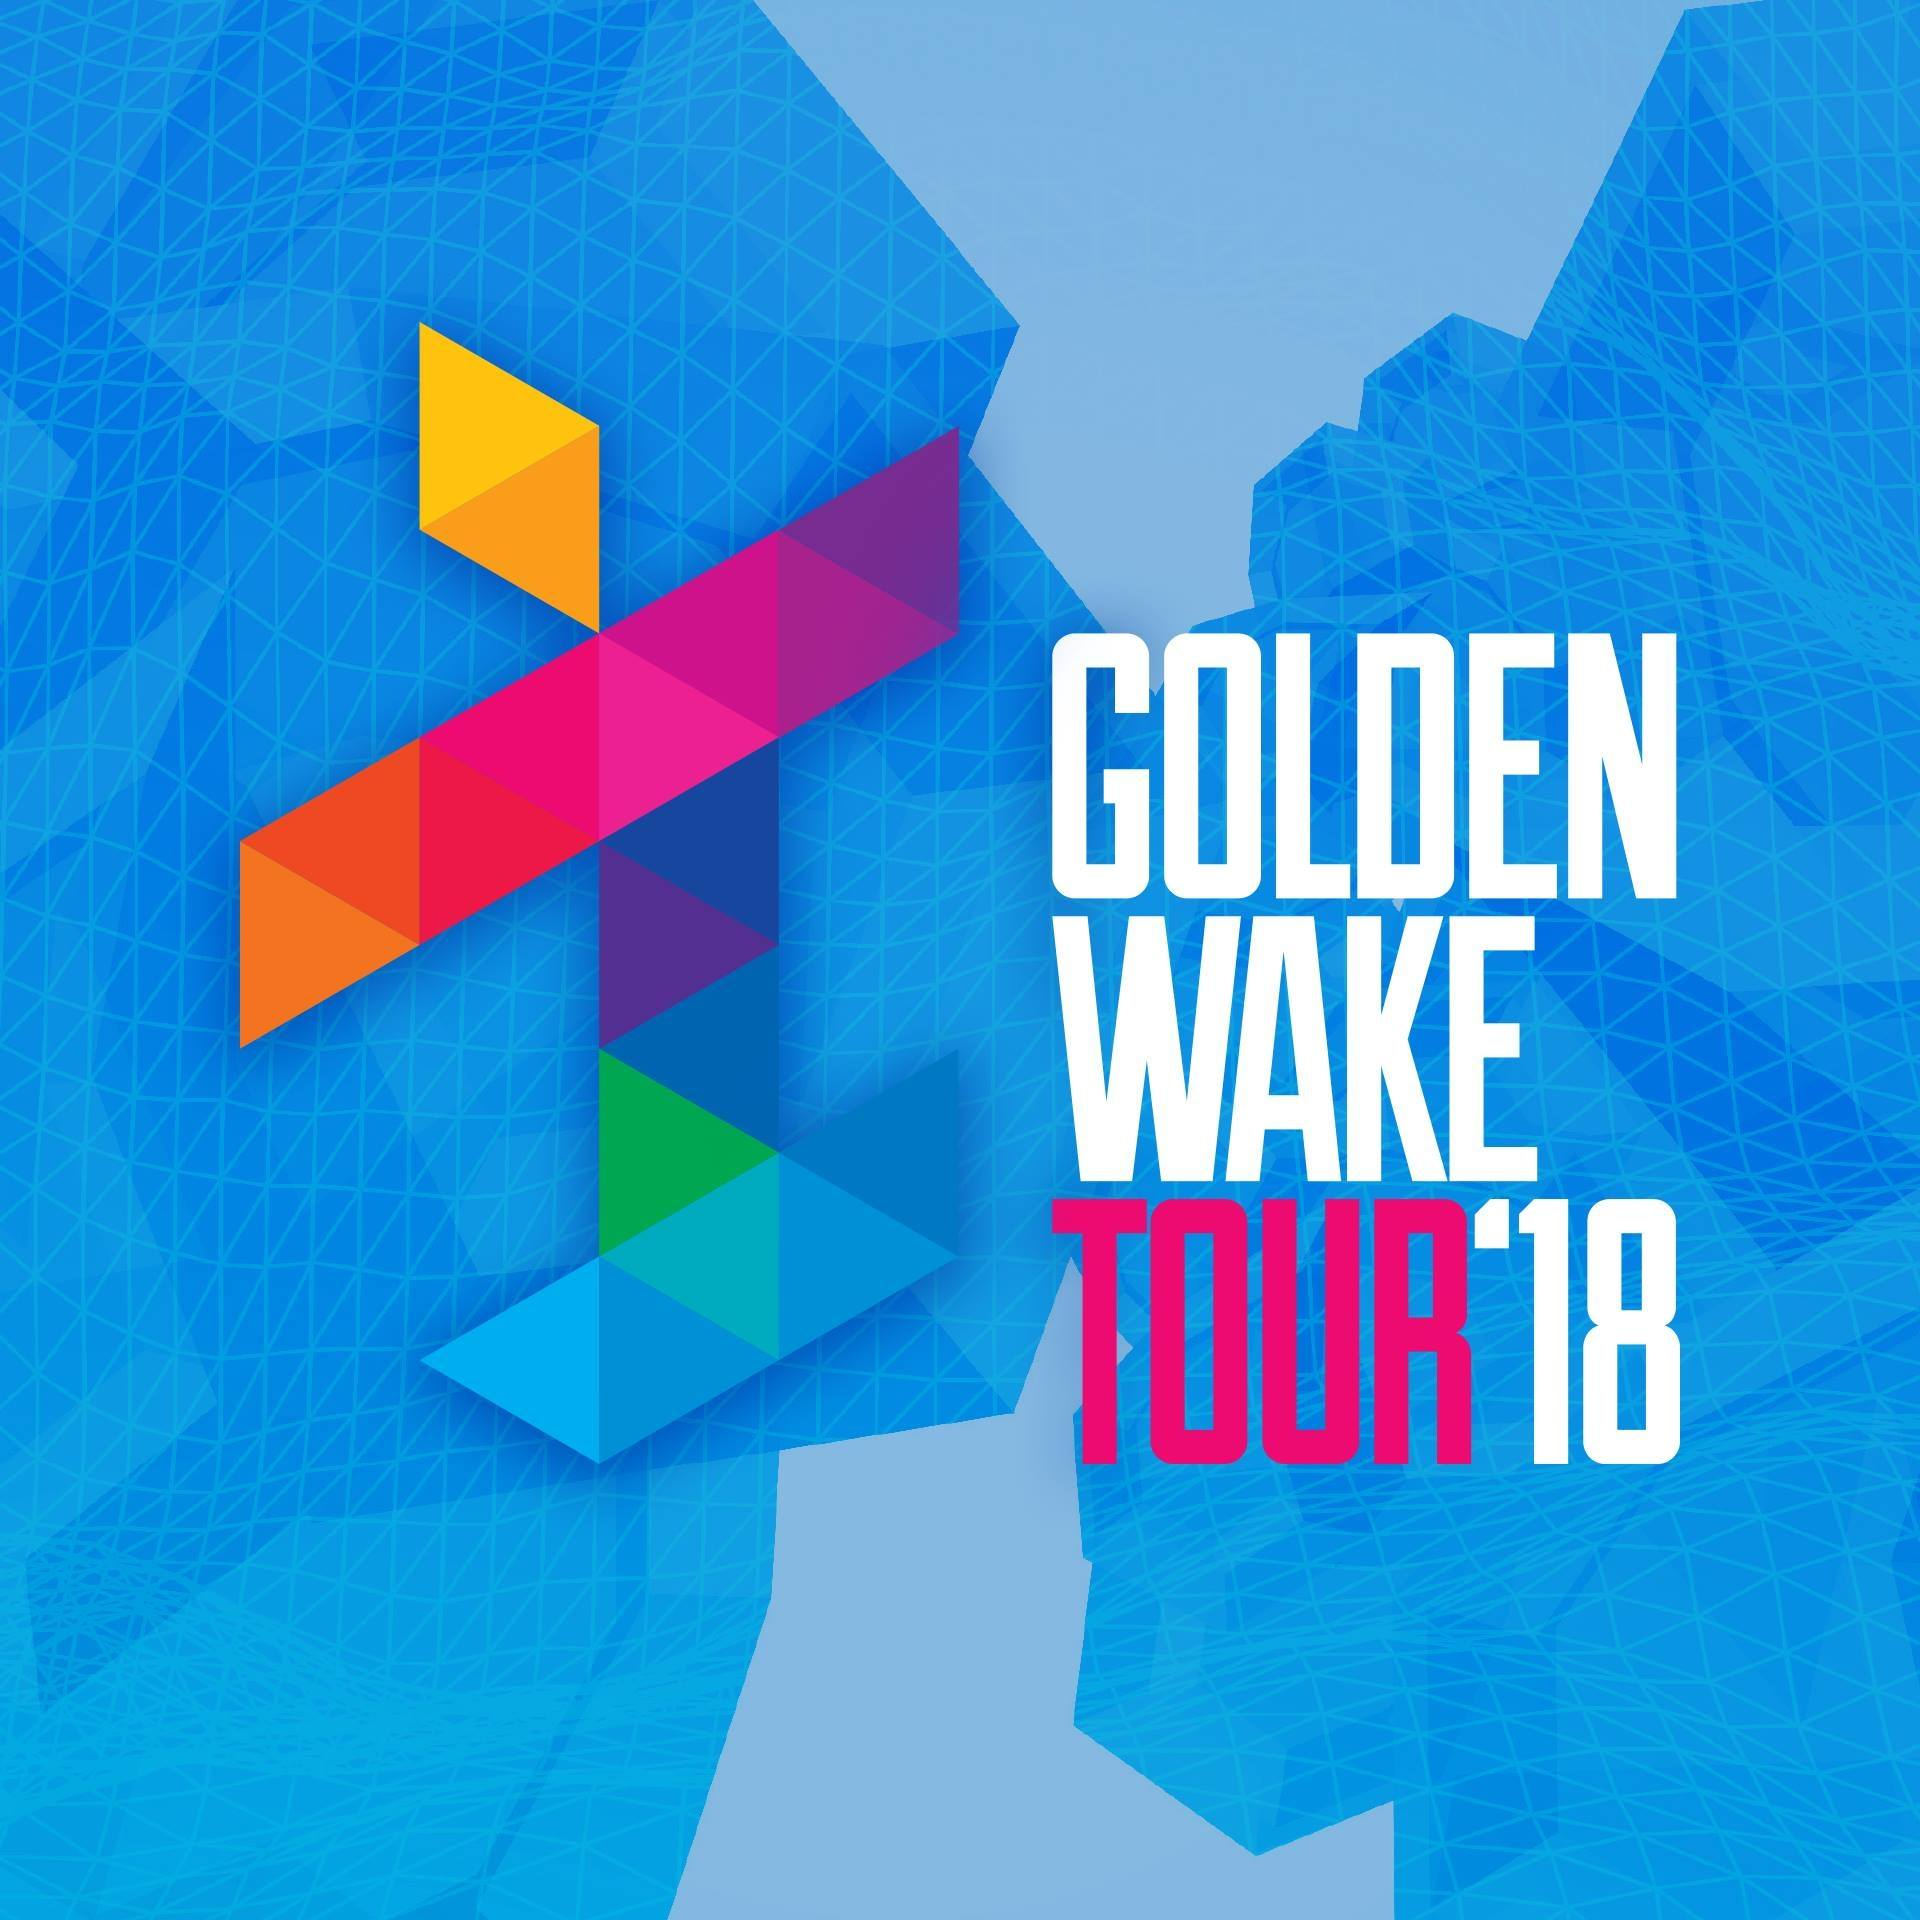 Golden Wake Tour startuje!